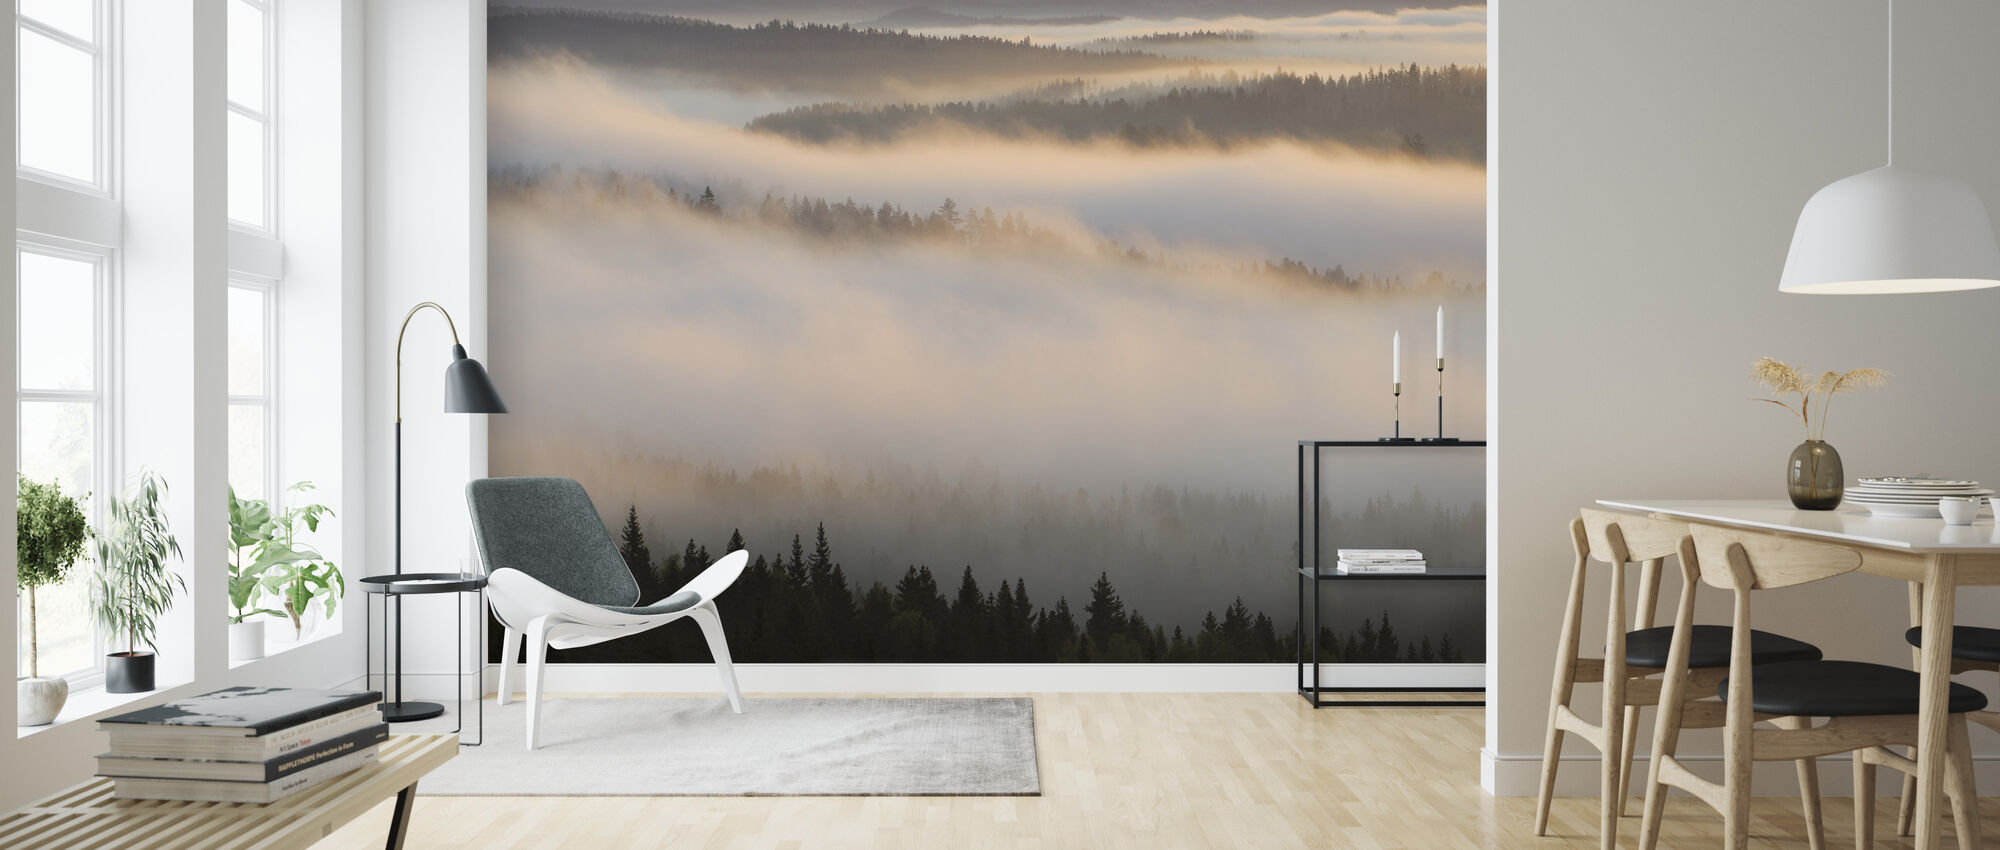 Fog in Bergslagen, Sweden - Wallpaper - Living Room